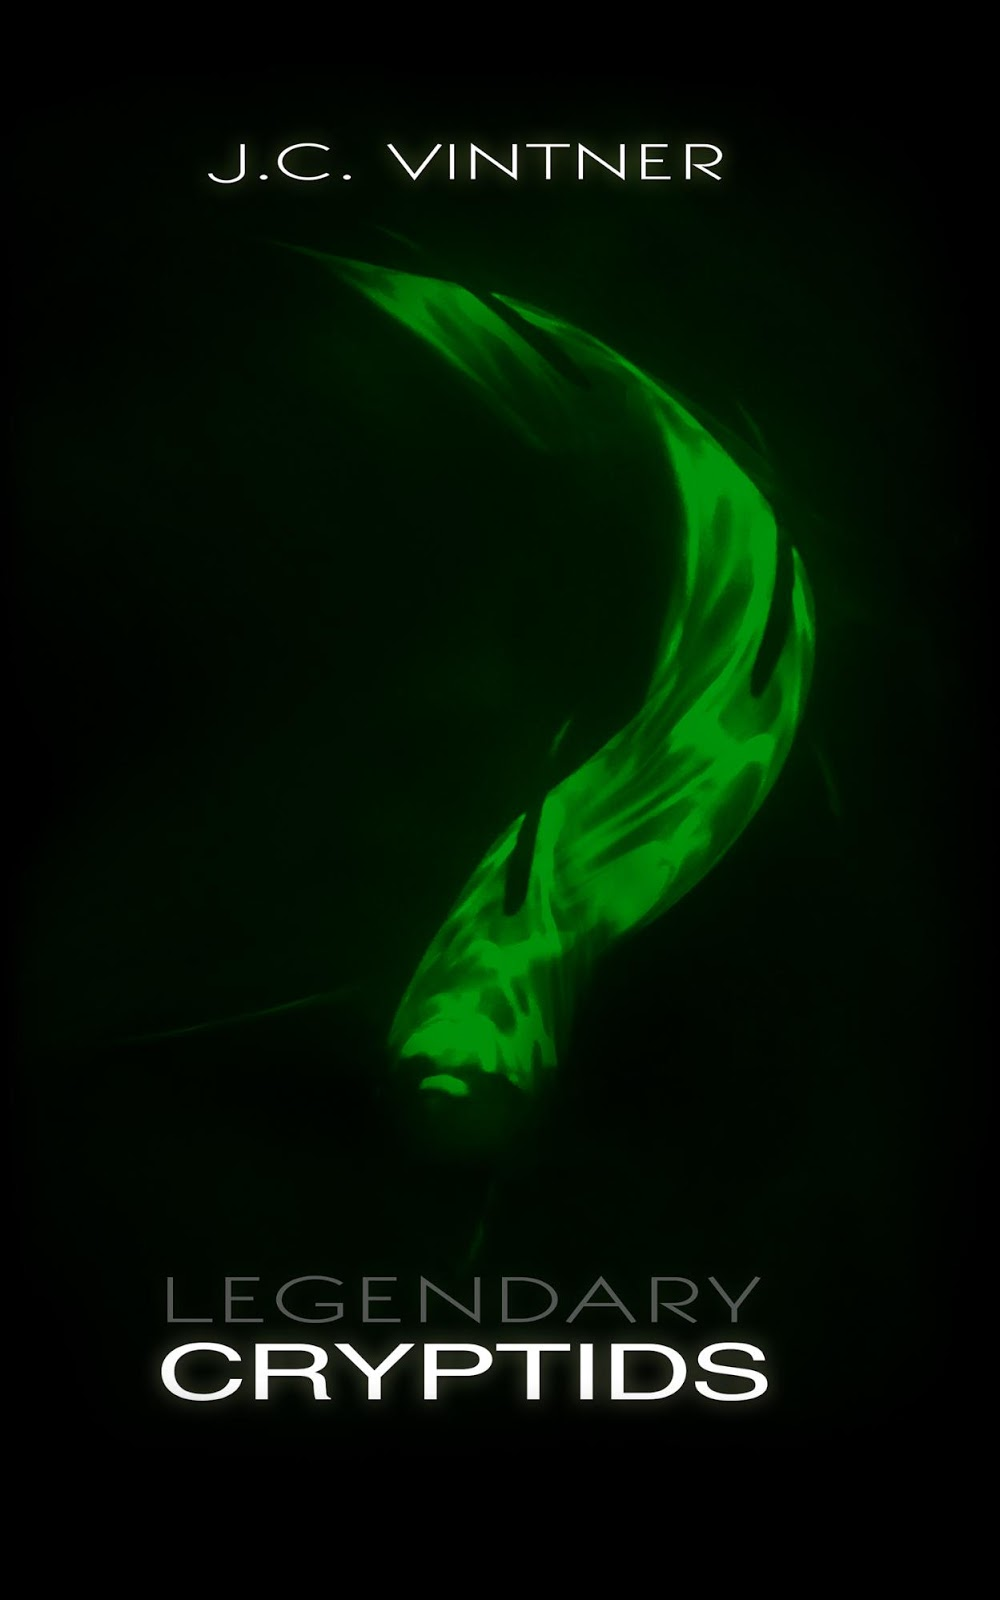 Ancient Mysteries Blog: Legendary Cryptids